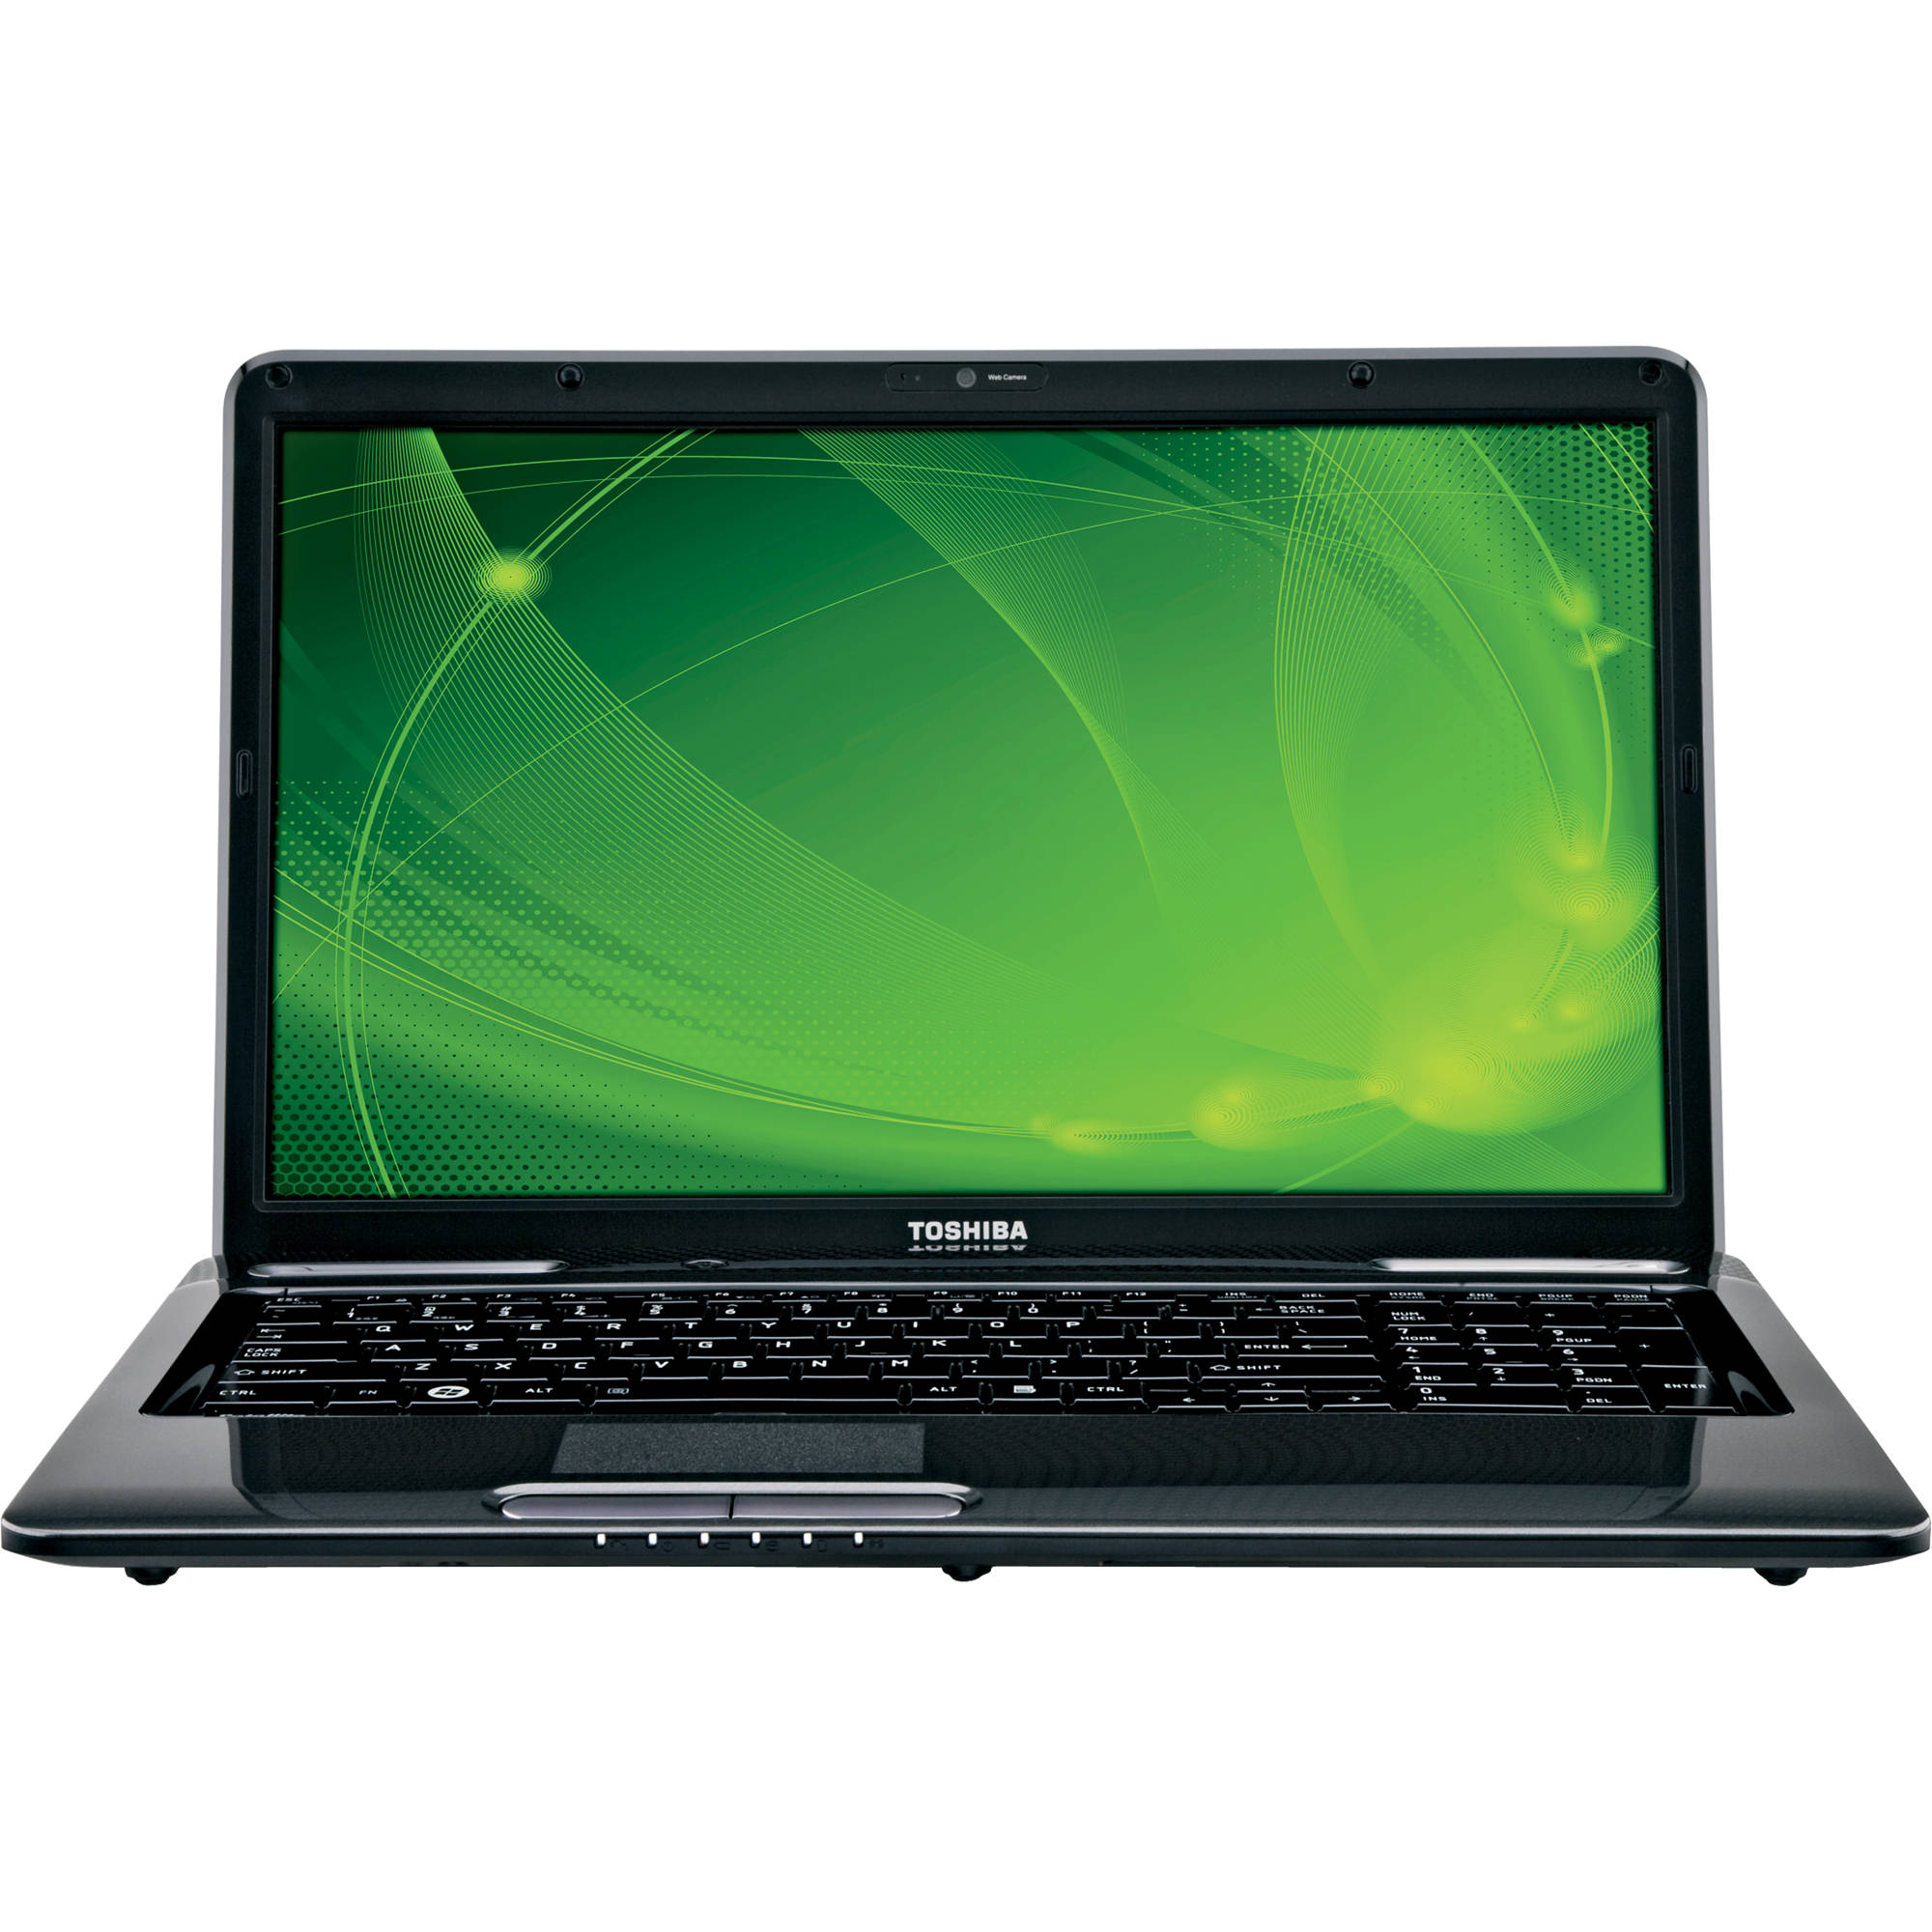 Toshiba Satellite L675 Assist Driver for Windows Mac